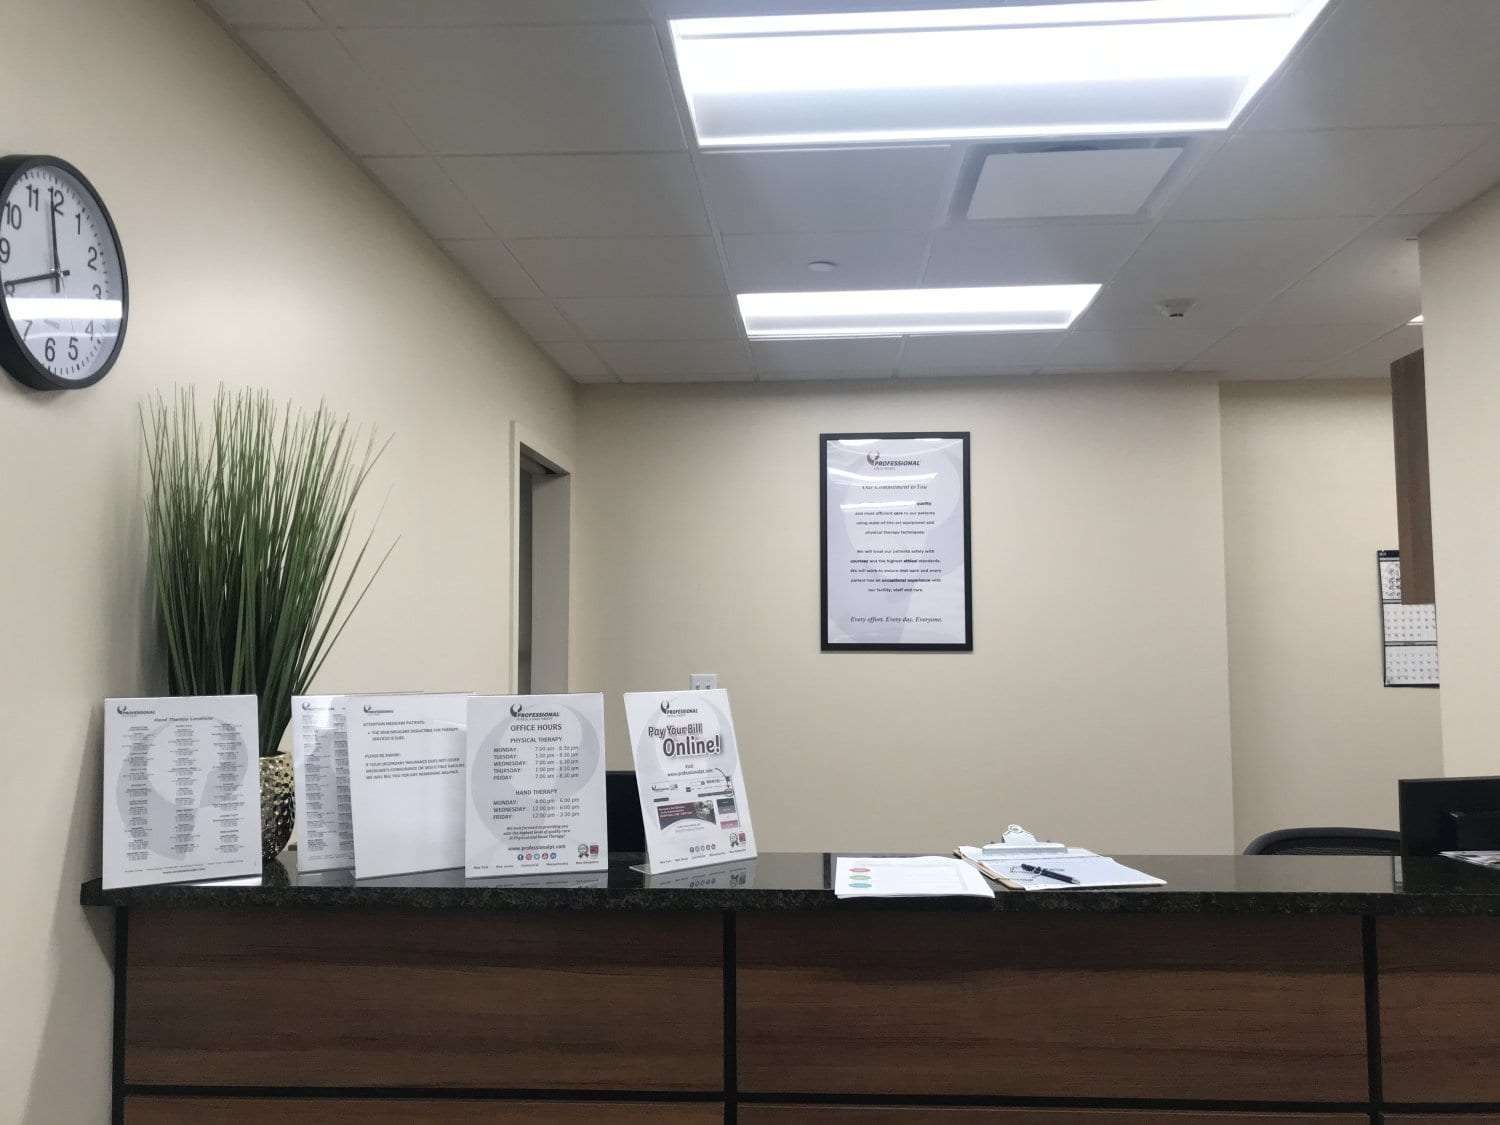 This is an image of the front desk at our physical therapy clinic in New Rochelle, New York.